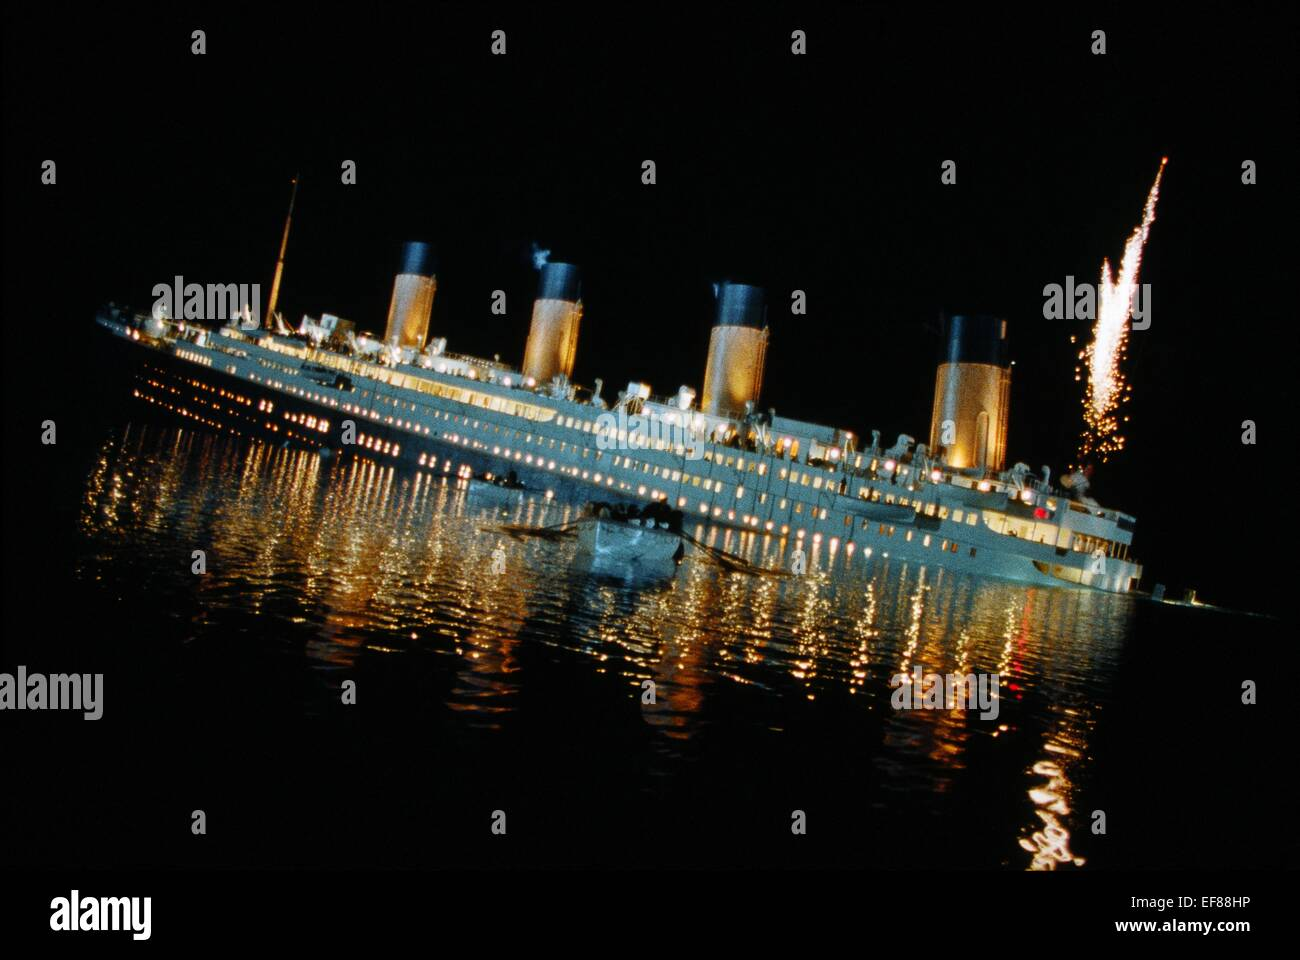 LIFEBOATS FLEE SINKING SHIP TITANIC (1997 Stock Photo ...